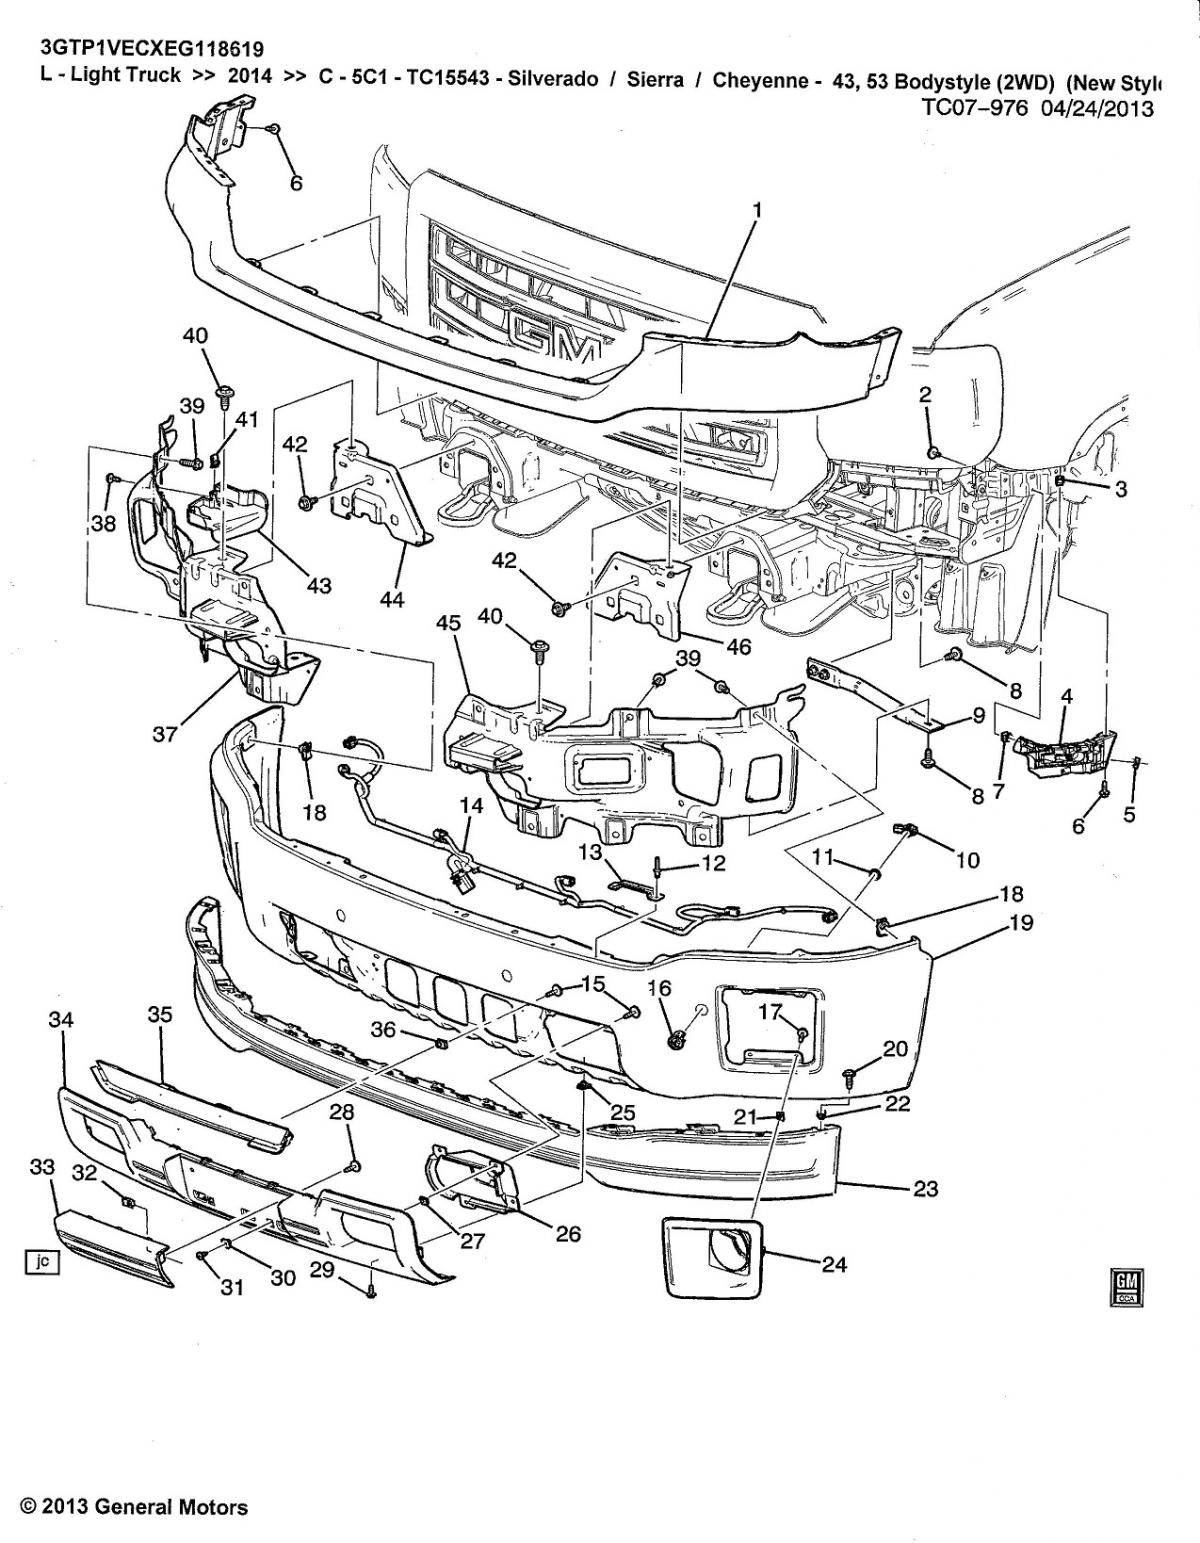 Adesivo De Parede Arvore Vento 004 also Necesito El Diagrama De Distribucion De Una Chevrolet Colorado 2005 Motor 28 4 Cilindros also 5B5C05 moreover 2000 Vw Beetle Engine Diagram Wiring Diagrams further 262001865 Epson Stylus Scan 2000 All In One Printer Scanner. on auto manual